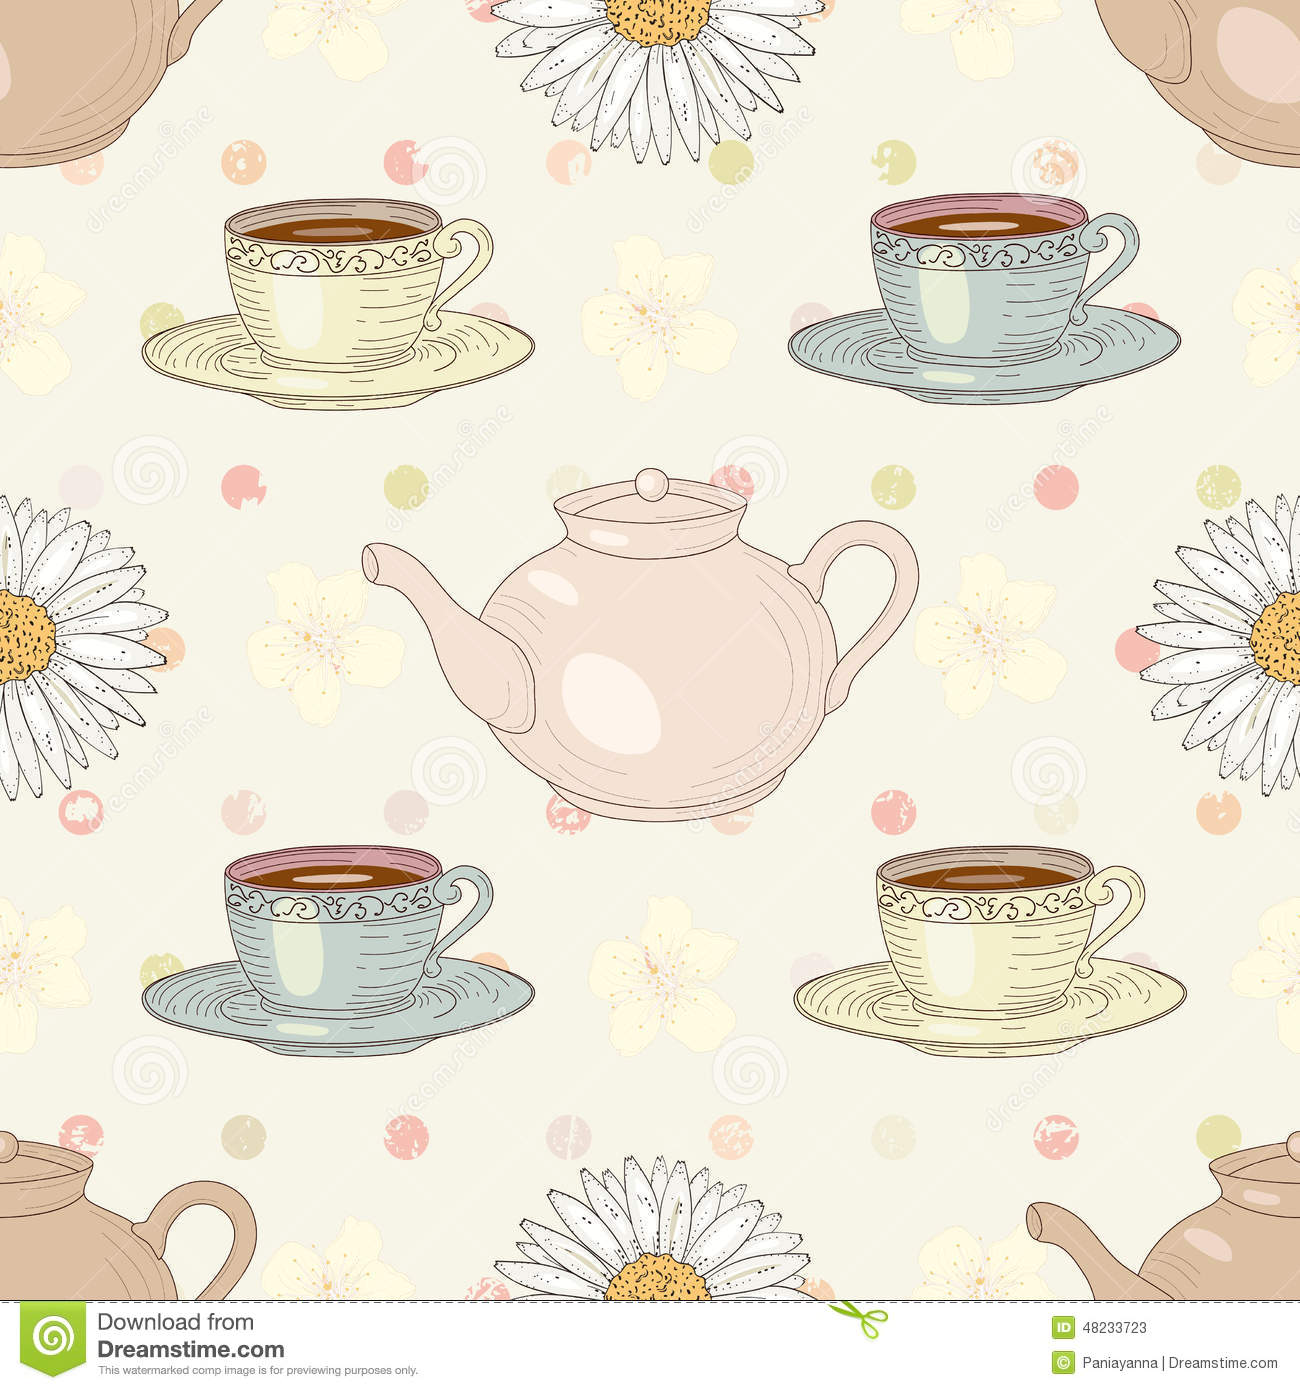 Free Tea Party Invitations Templates for amazing invitations template